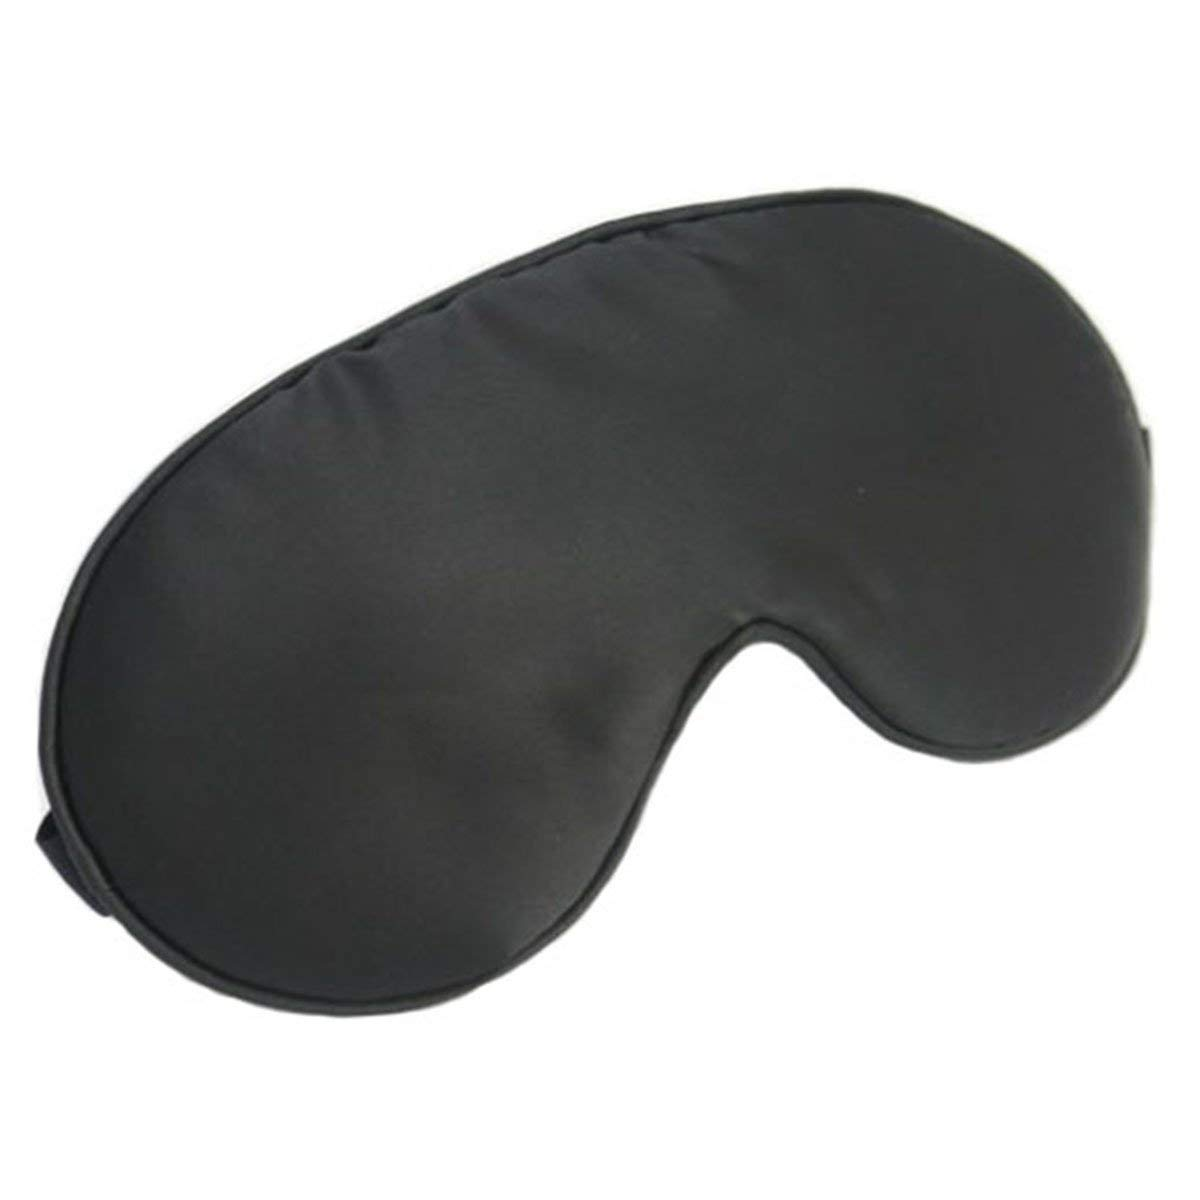 100% Silk Eye Mask for Sleep,Natural Silk Sleep Mask,Super-smooth Eye Mask Blindfold, Blocks Light